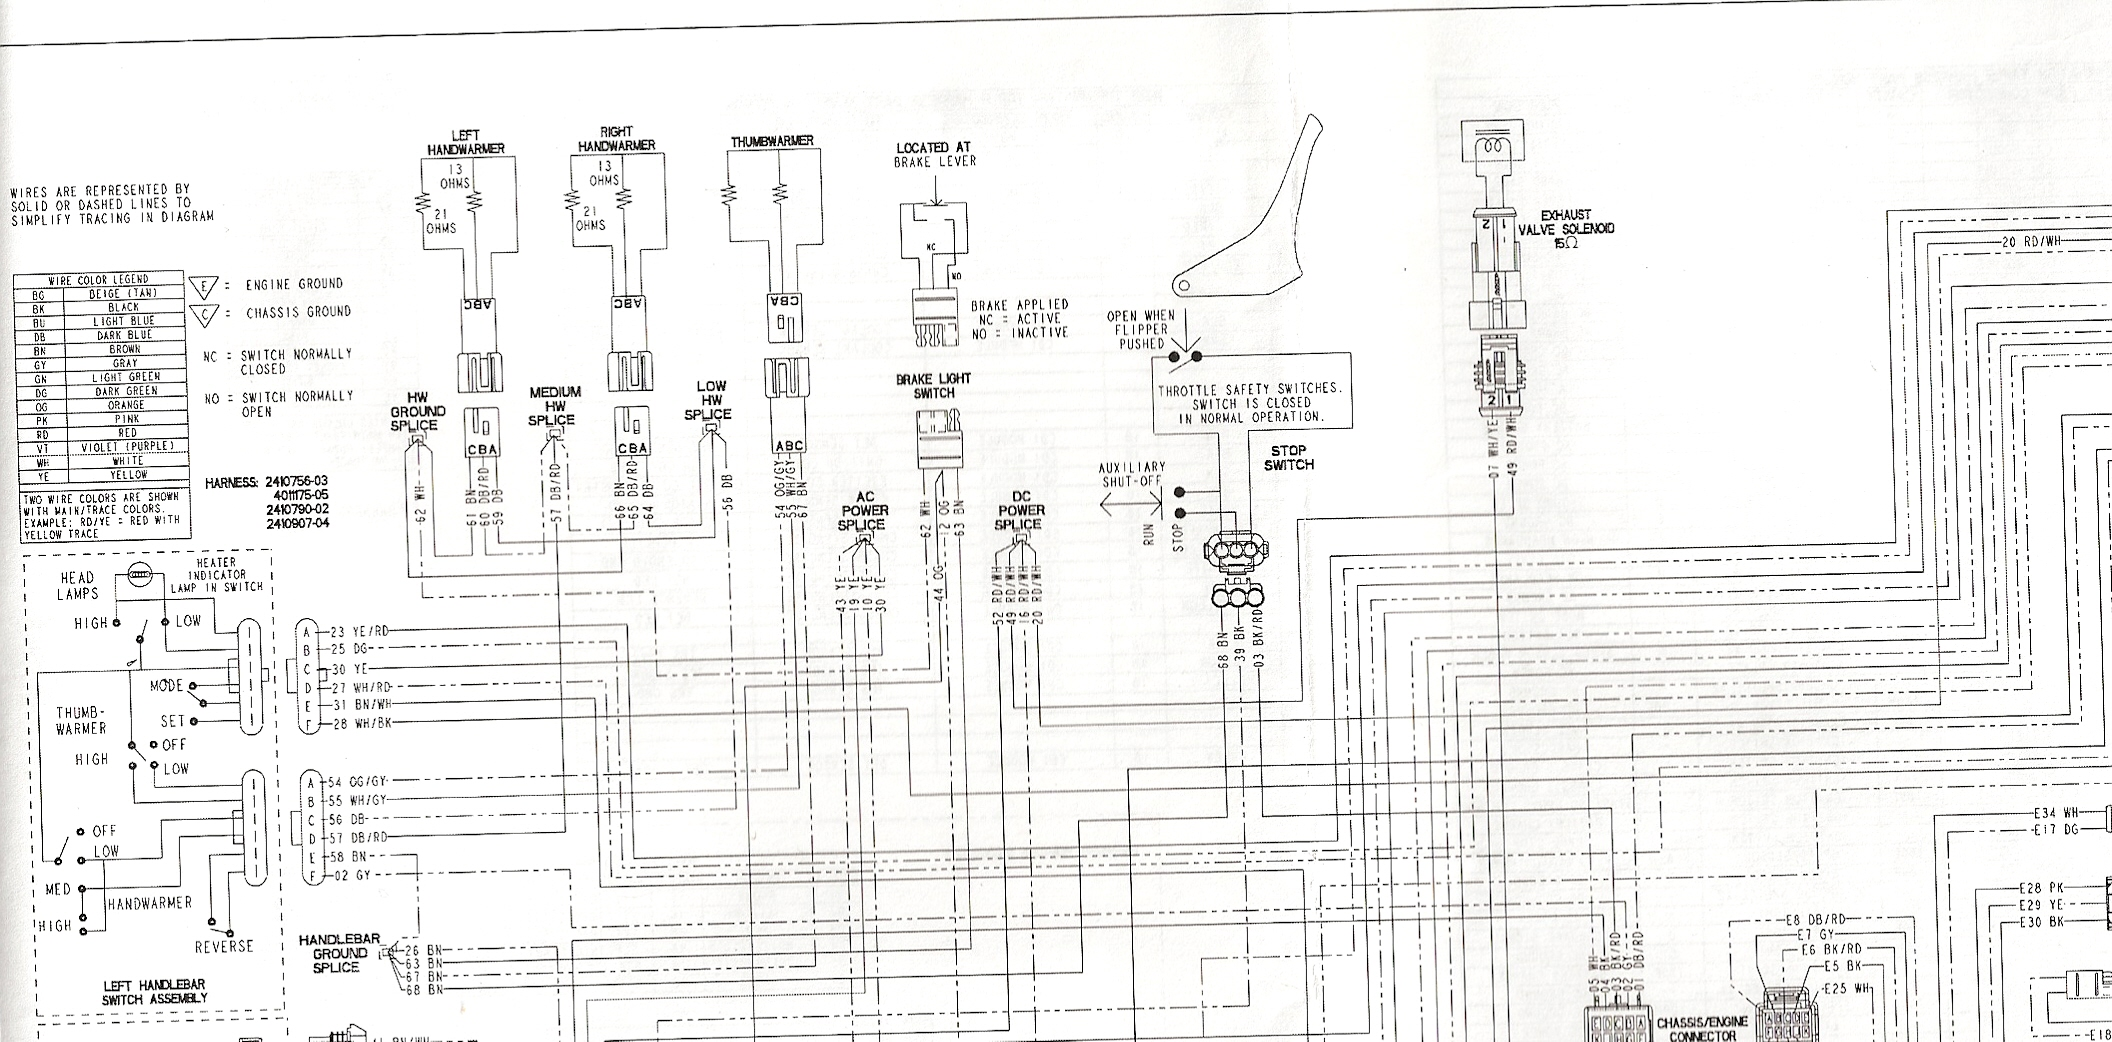 WPYK_7448] 1998 Polaris 700 Rmk Wiring Diagram Download Wiring Diagram -  ERDDIAGRAM.ROCKSTYLE.ESerddiagram.rockstyle.es